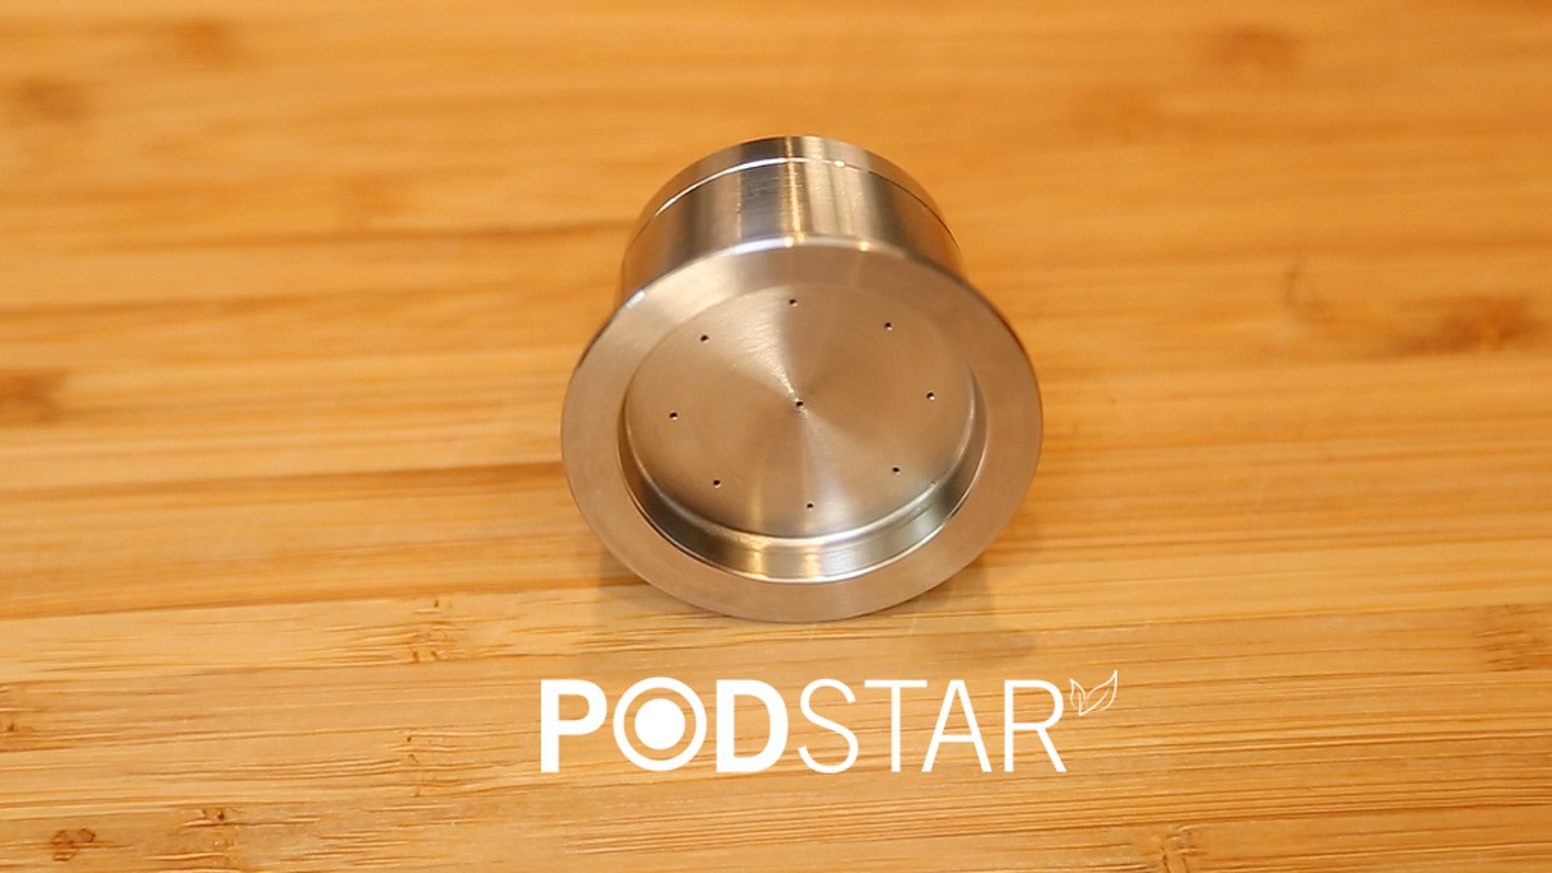 Pod Star - Reusable Coffee Capsule for Aldi K-fee® machines by Eco